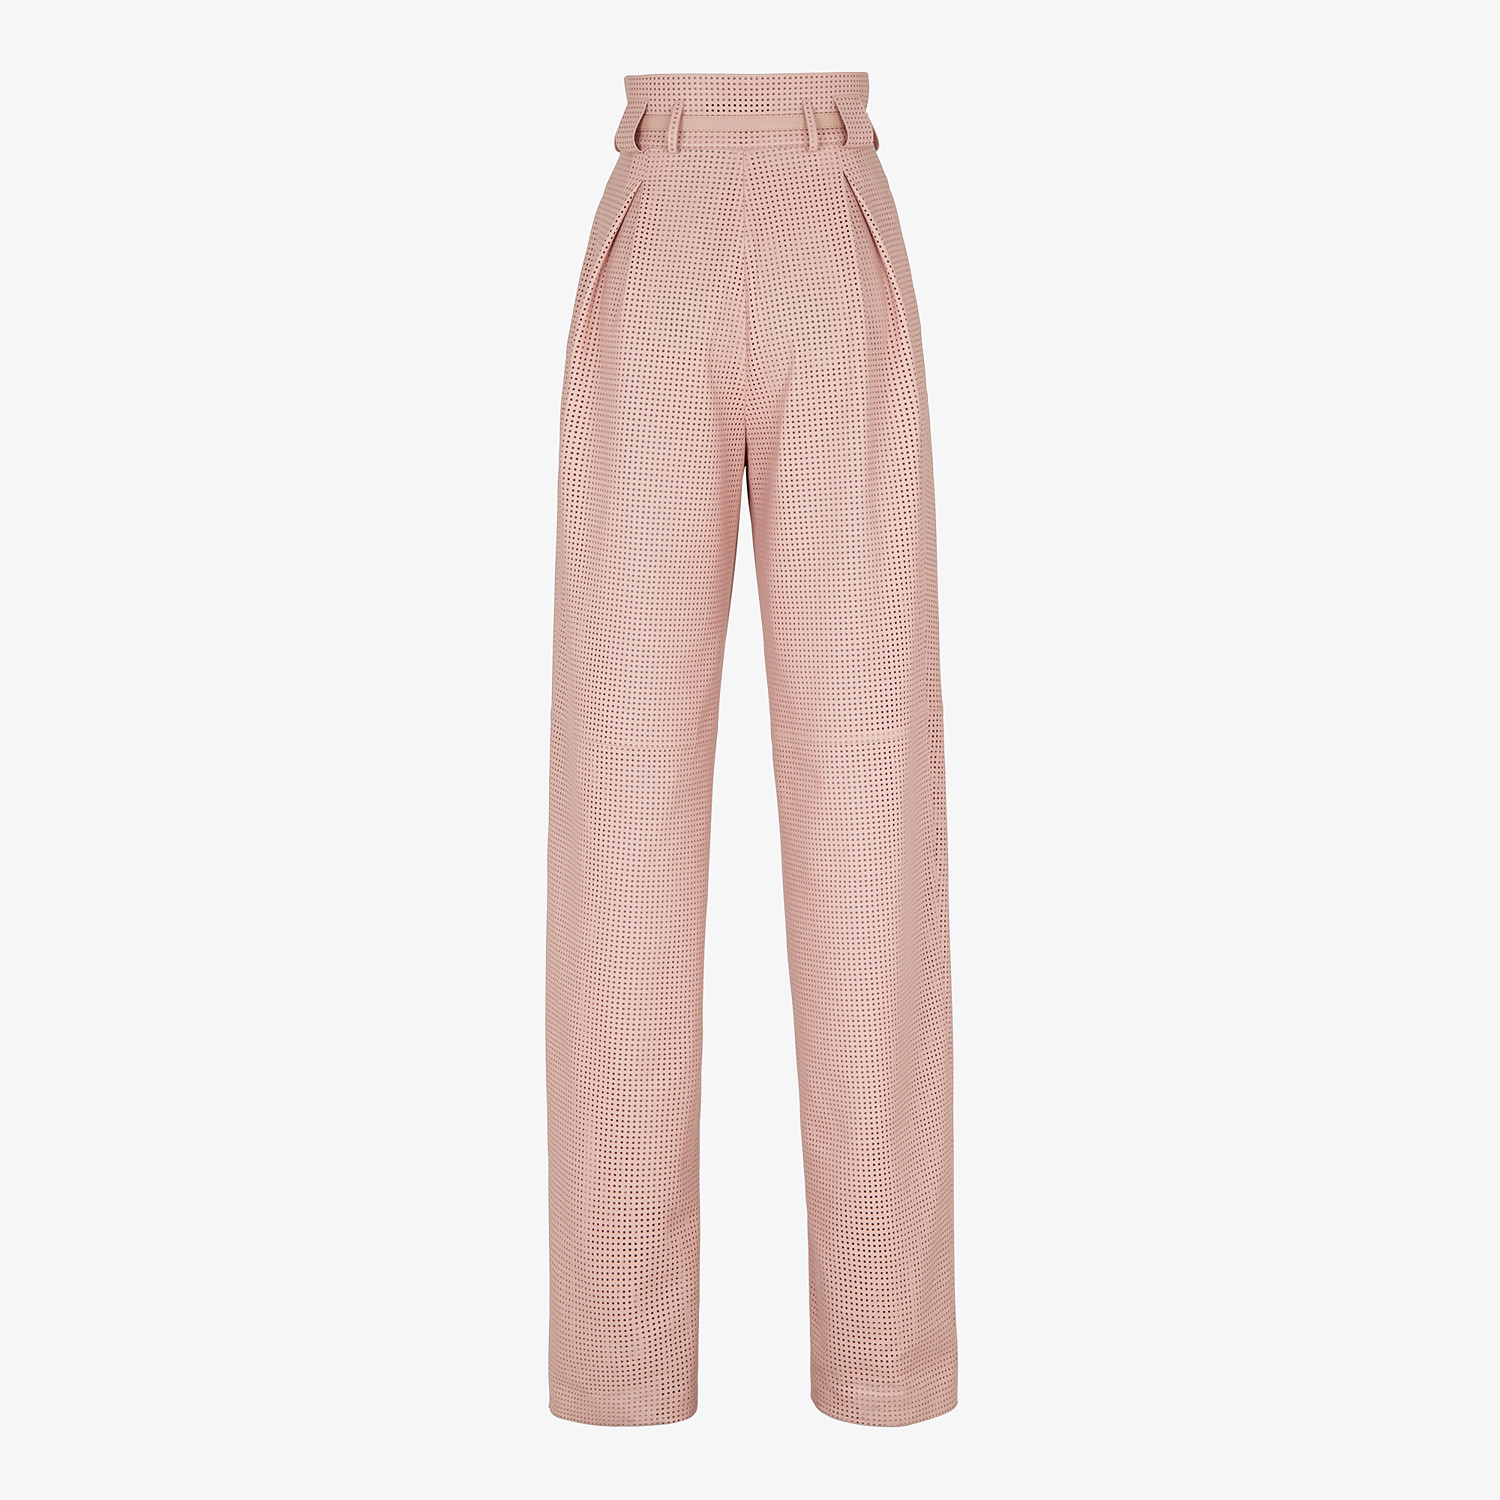 FENDI TROUSERS - Pink leather trousers - view 2 detail